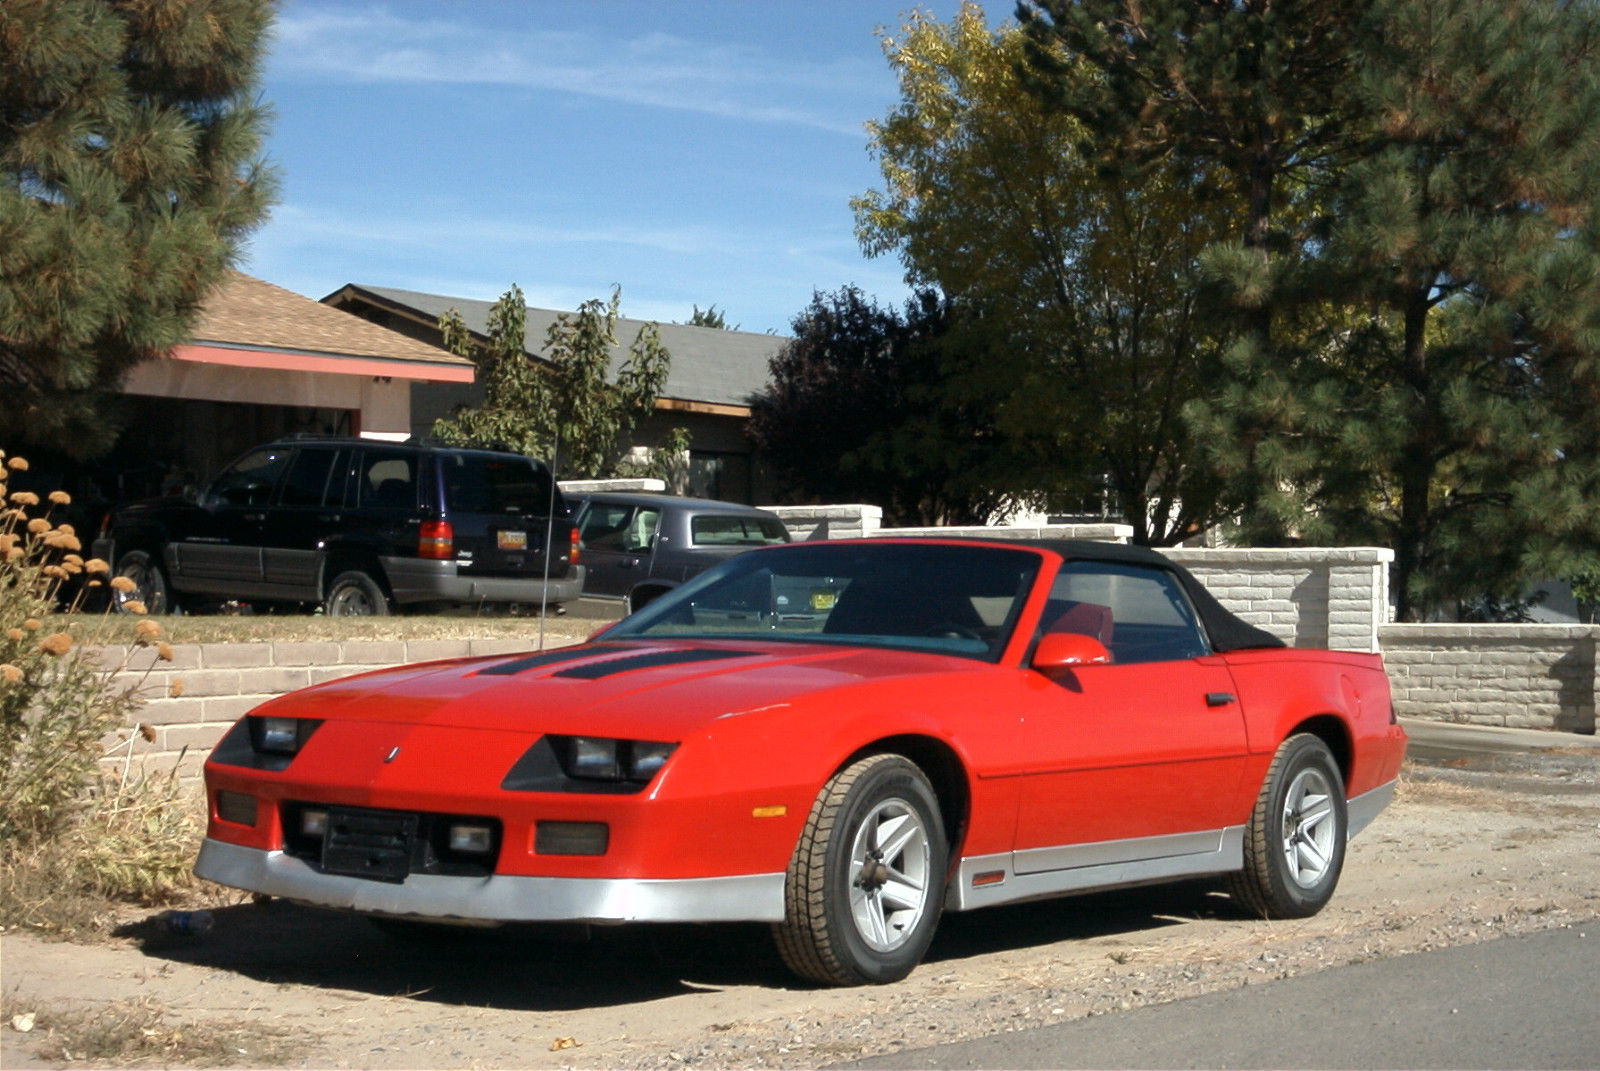 1987 chevrolet camaro z28 20th anniversary special le convertible 2 door 5 0l for sale in. Black Bedroom Furniture Sets. Home Design Ideas